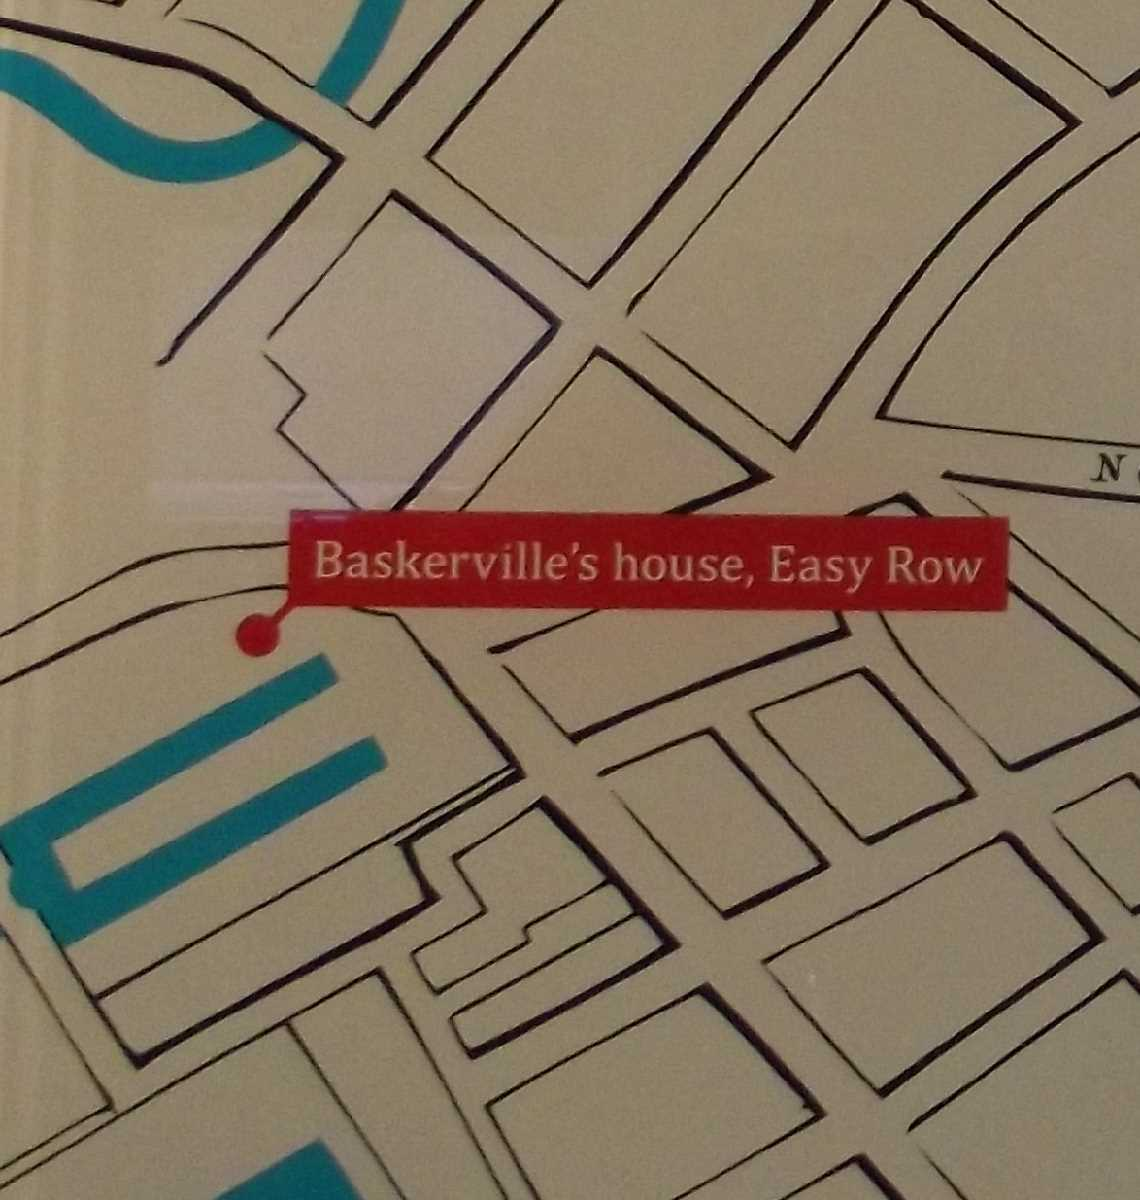 Baskerville's Easy Row home